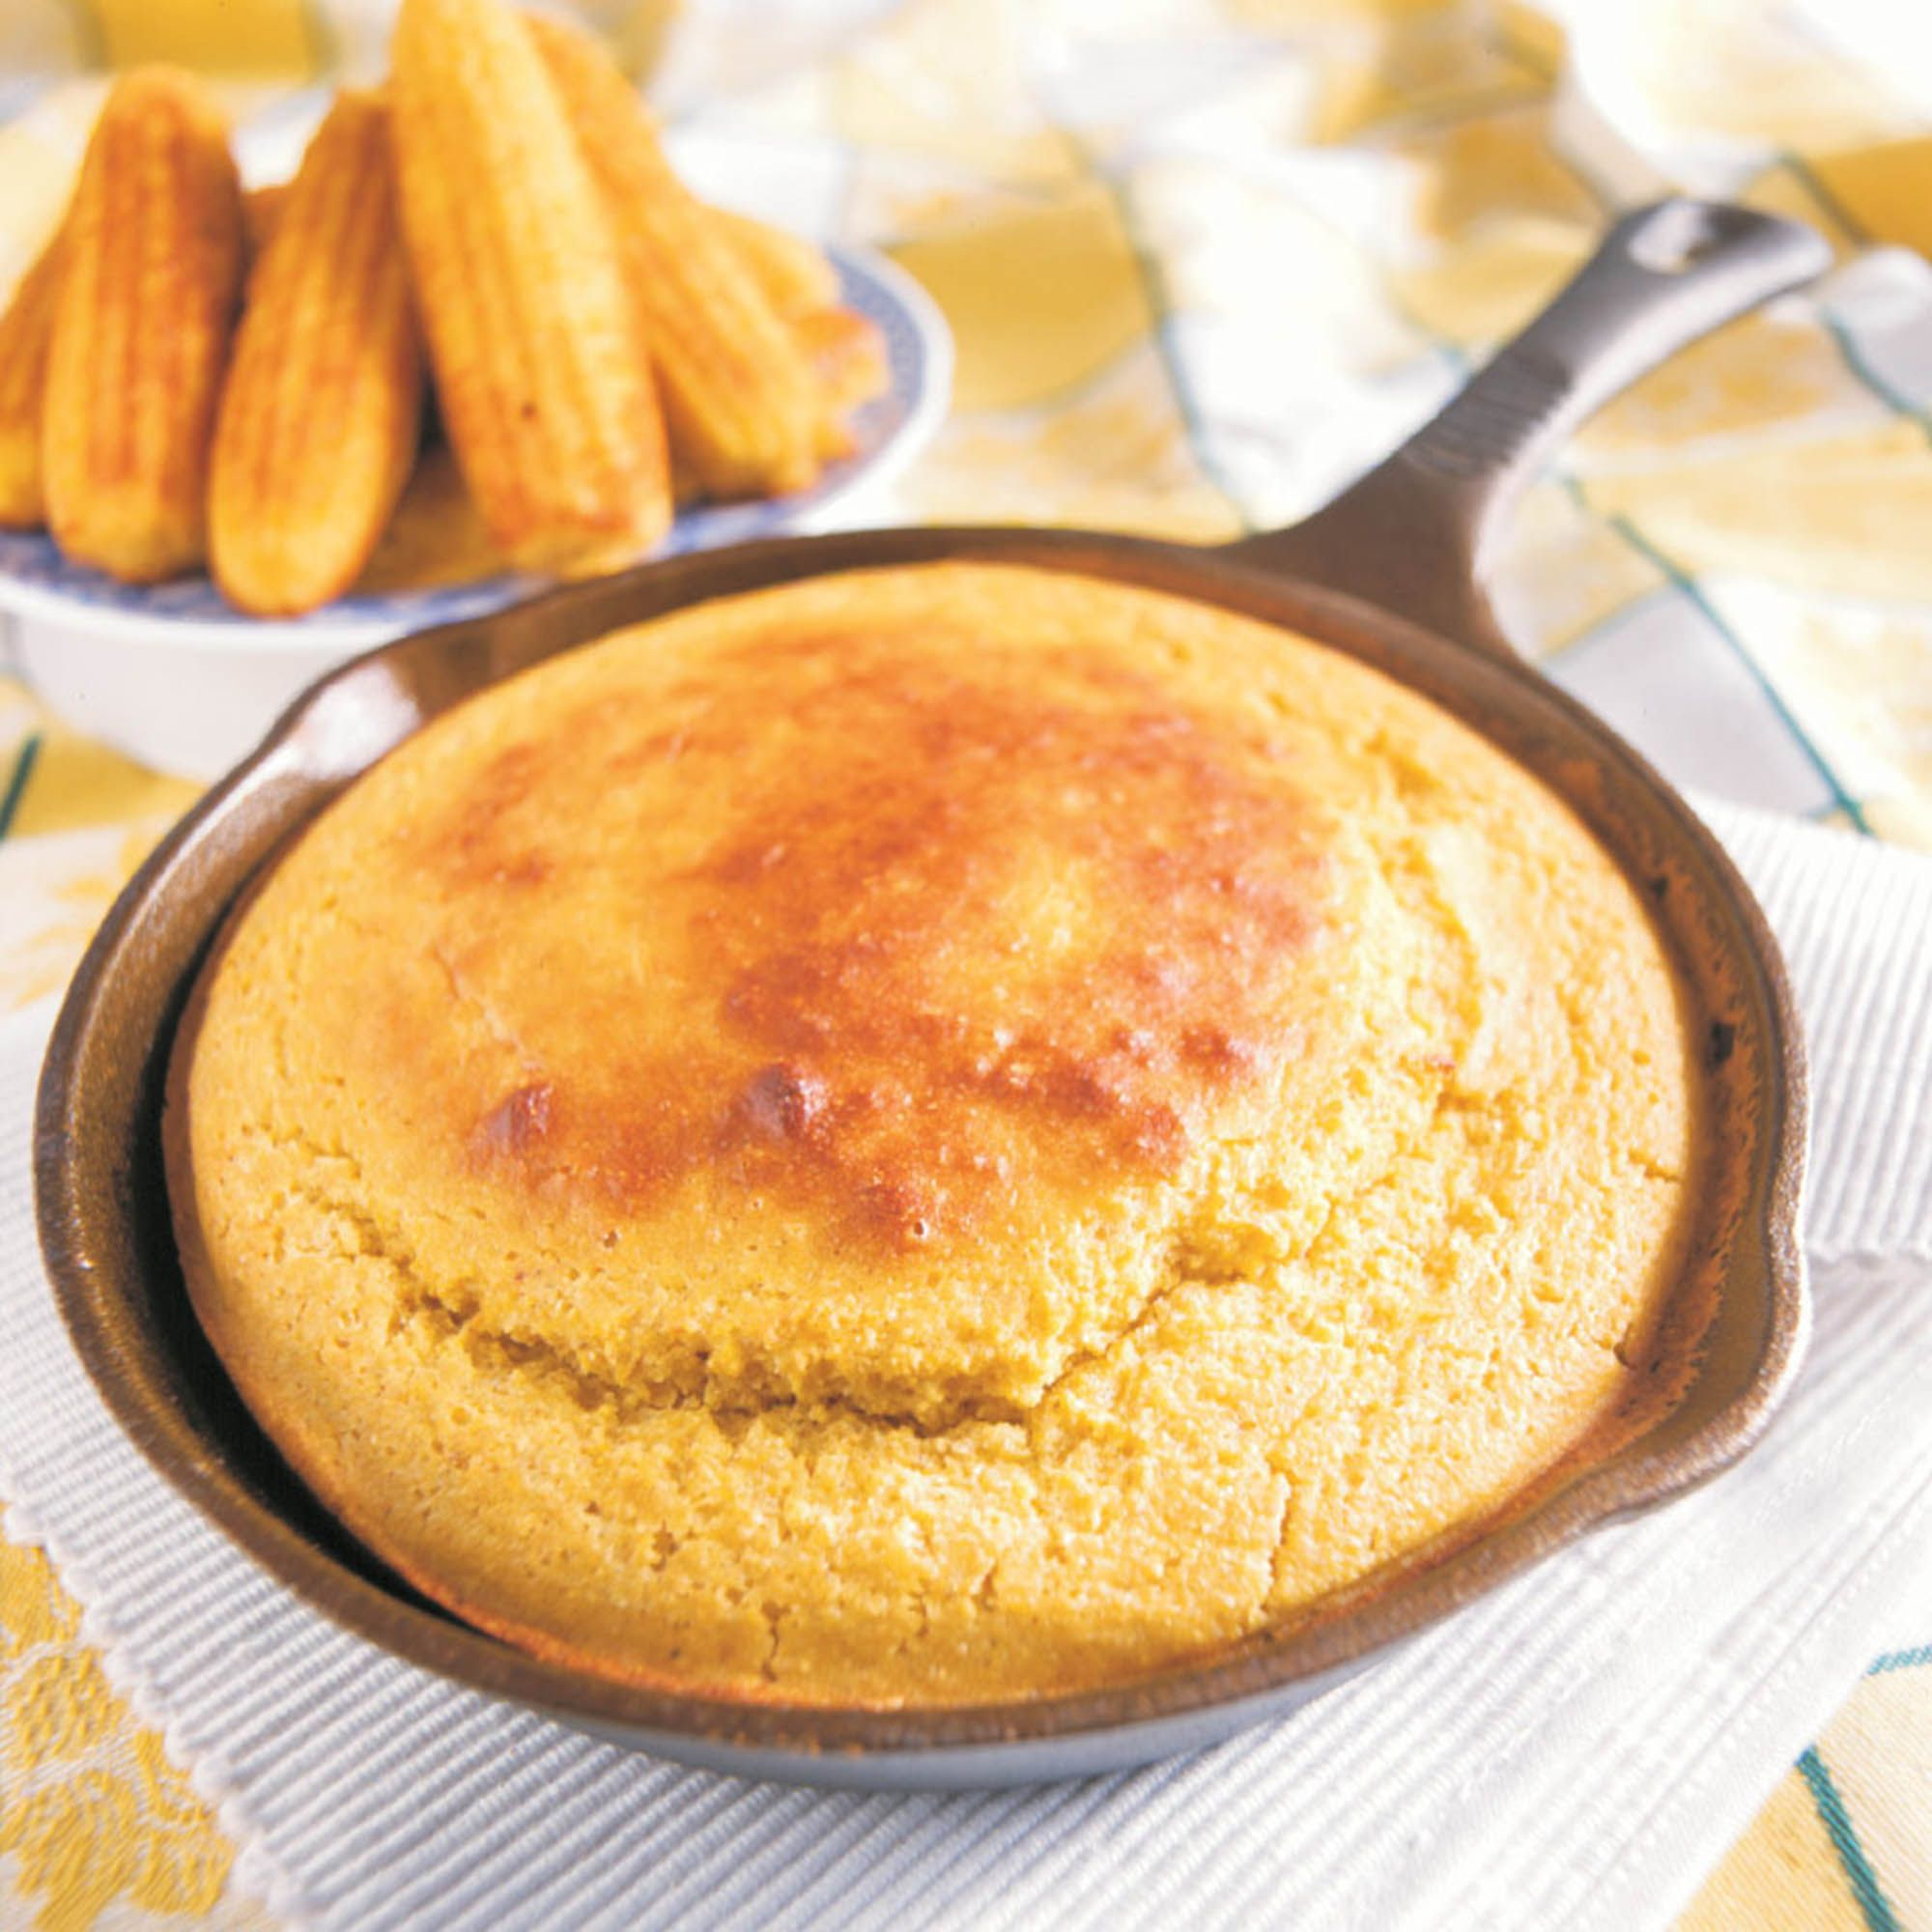 Cornmeal Mush Gives The Bread A Strong Corn Flavor And A